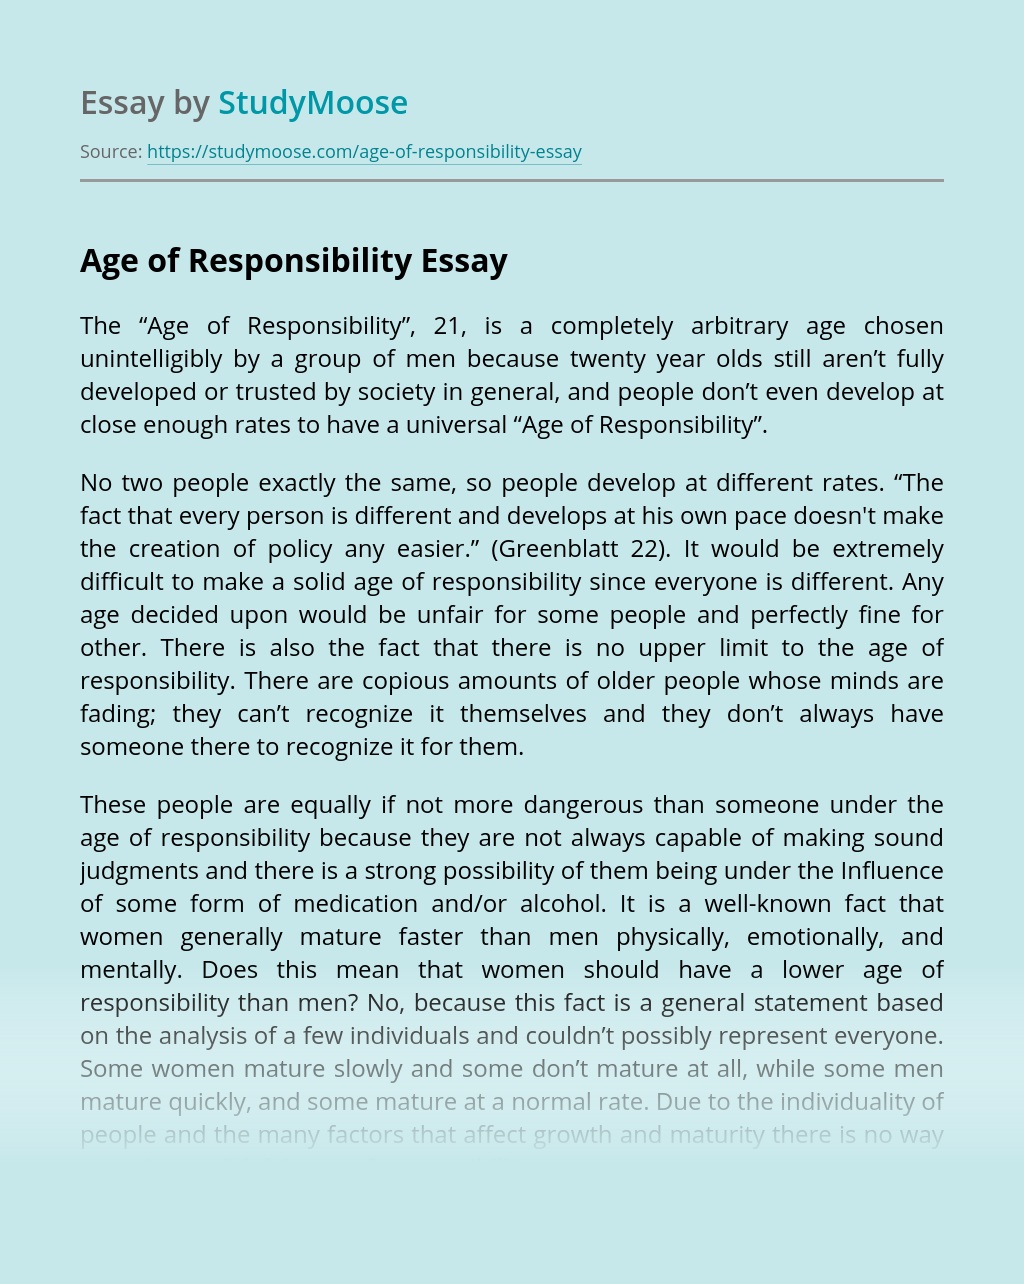 Age of Responsibility